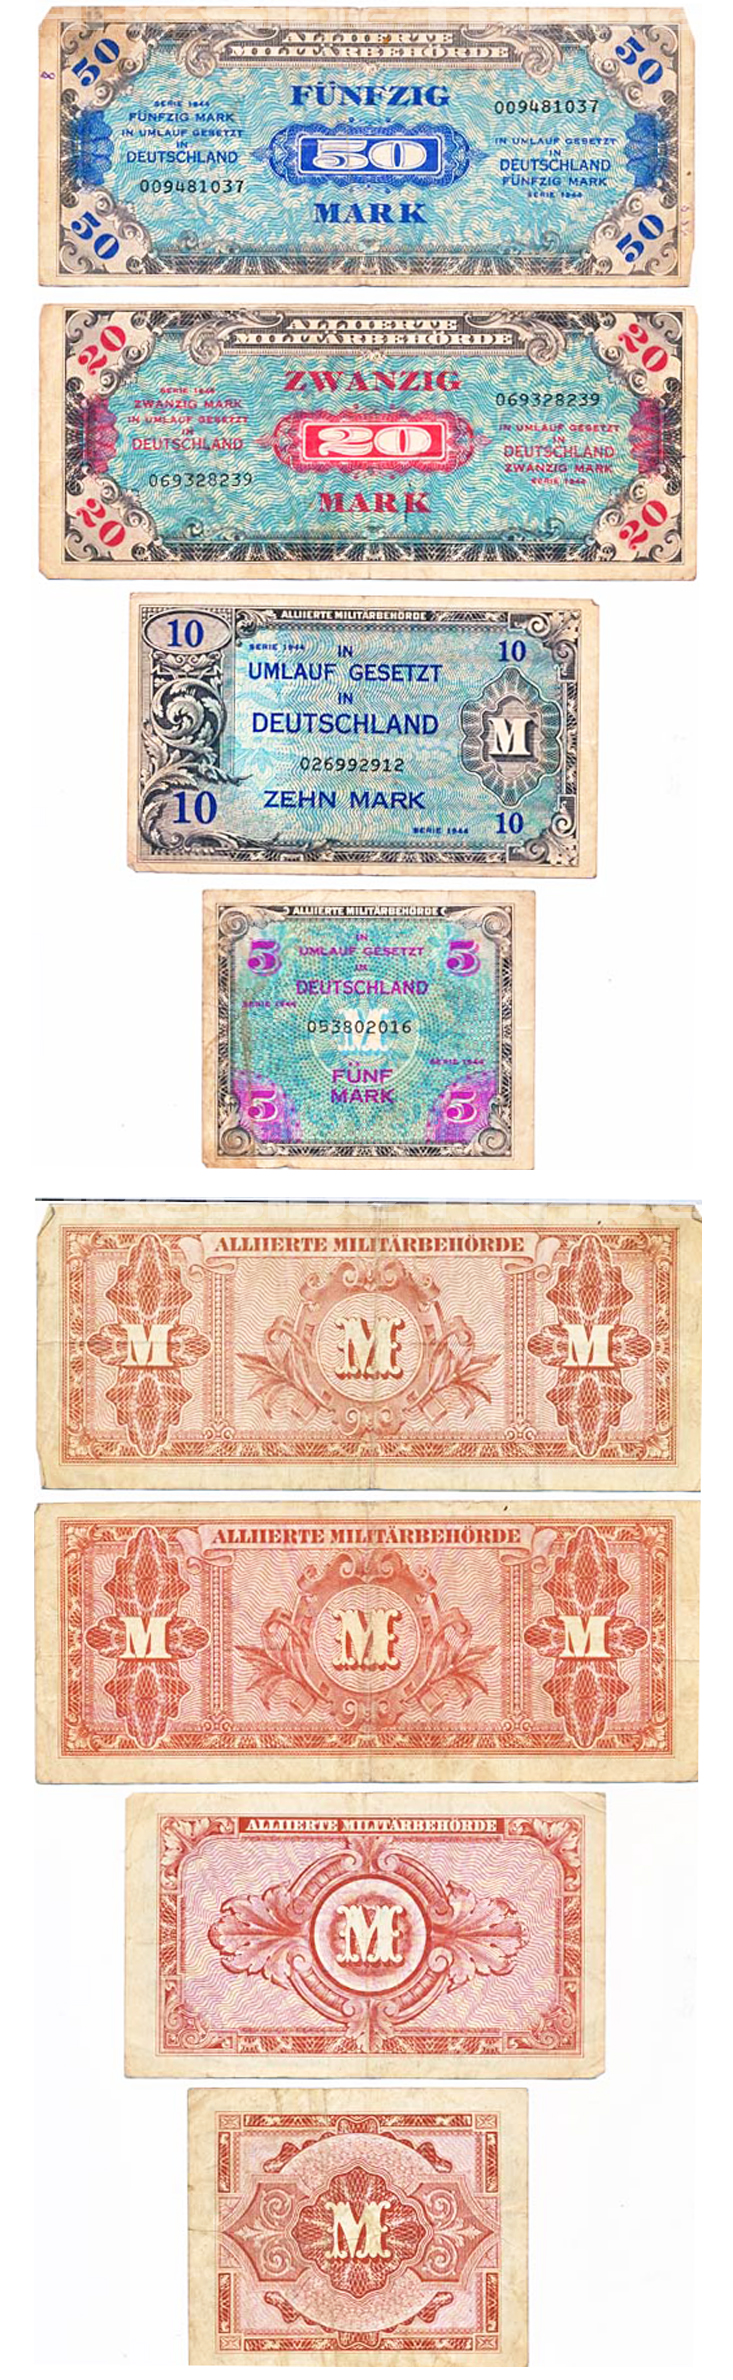 Four piece Allied Military Currency 1944